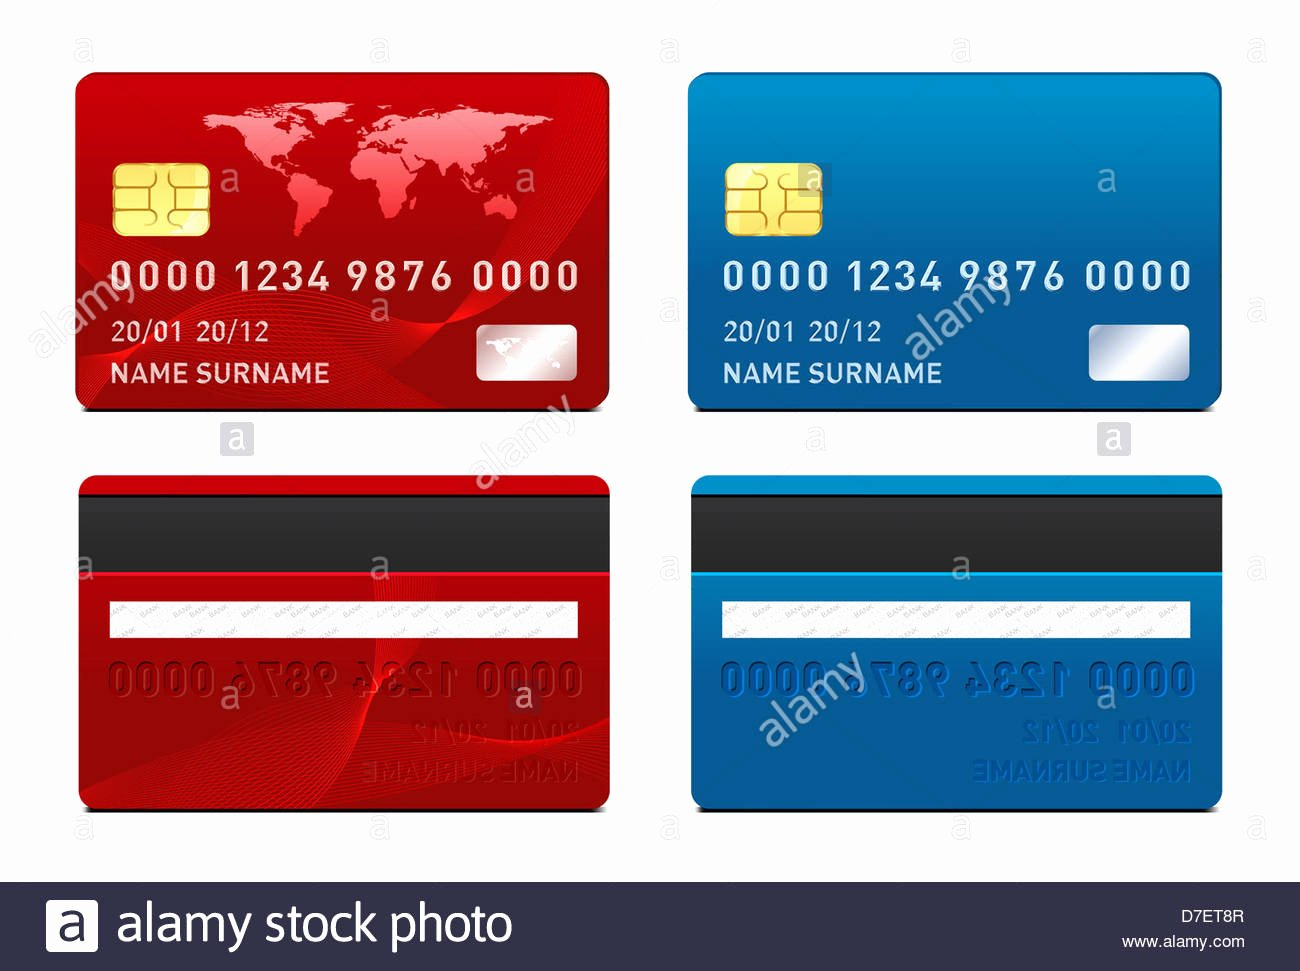 Credit Card Template Front and Back Side Stock